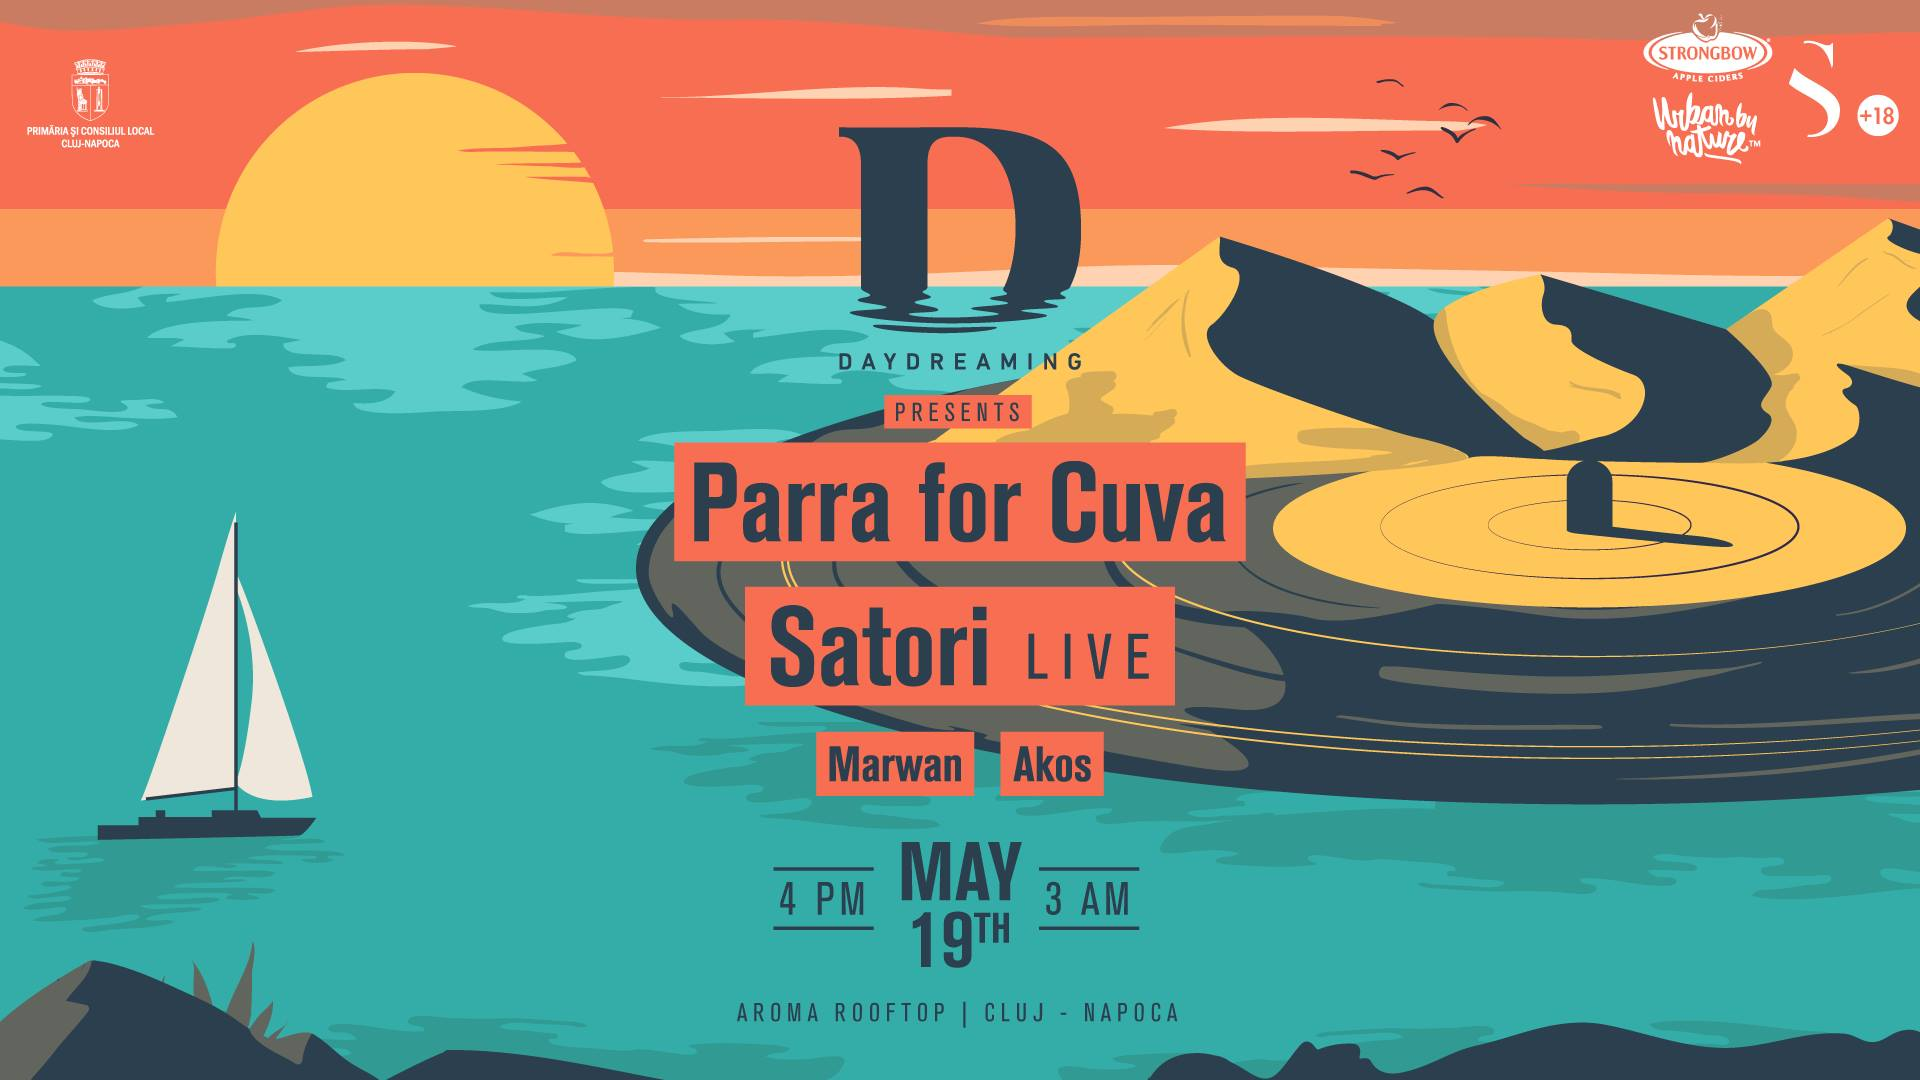 Rooftop Daydreaming x Parra for Cuva x Satori Live